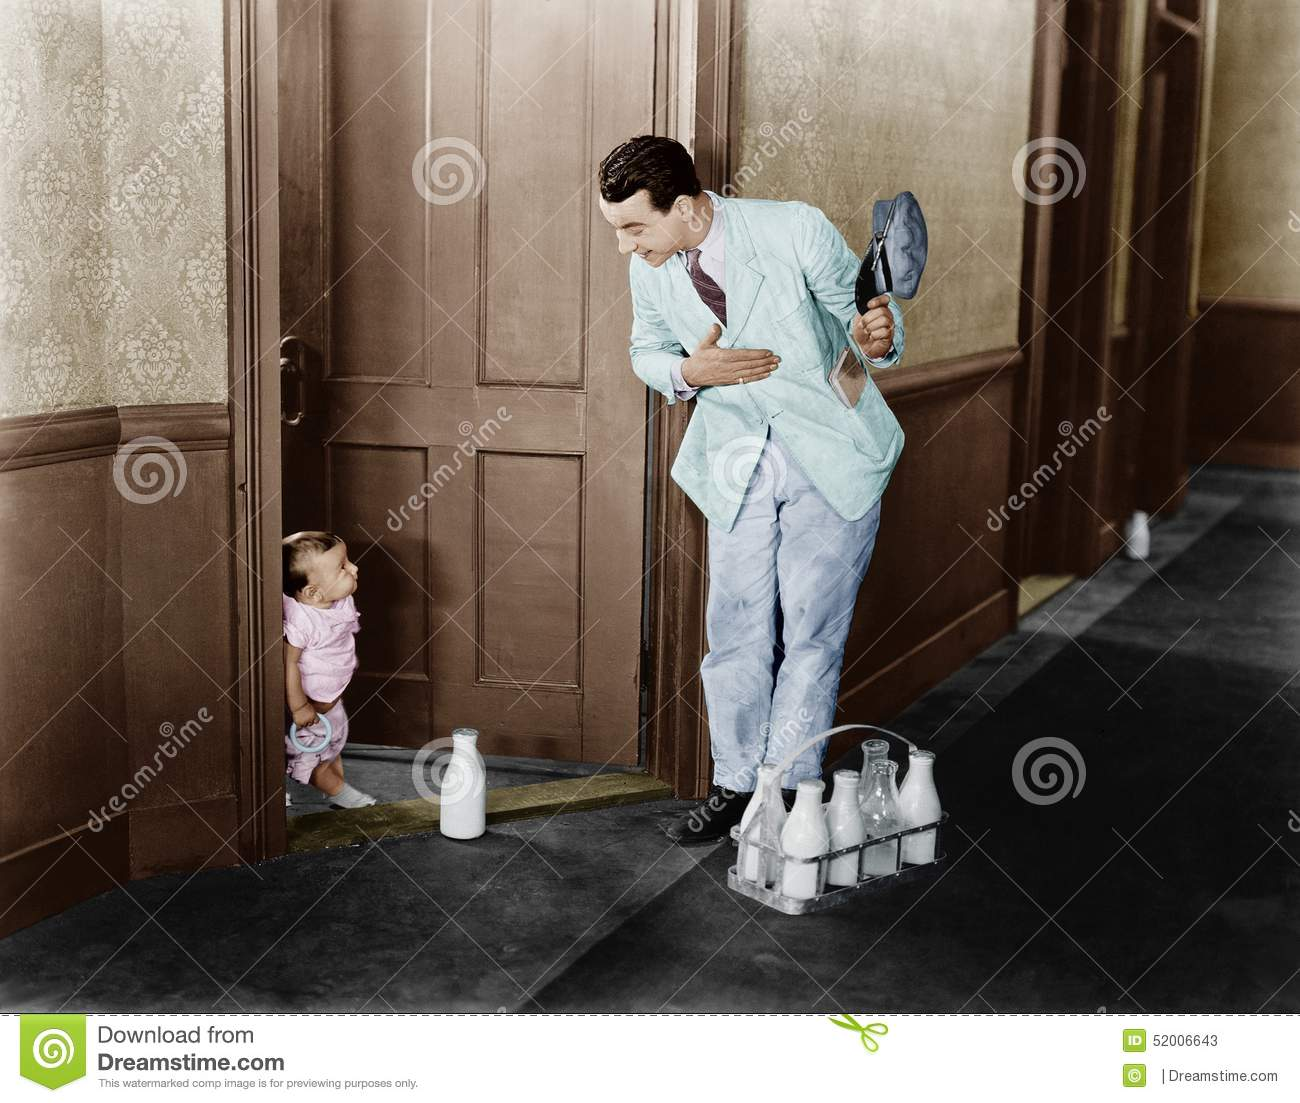 Milkman greeting baby at door